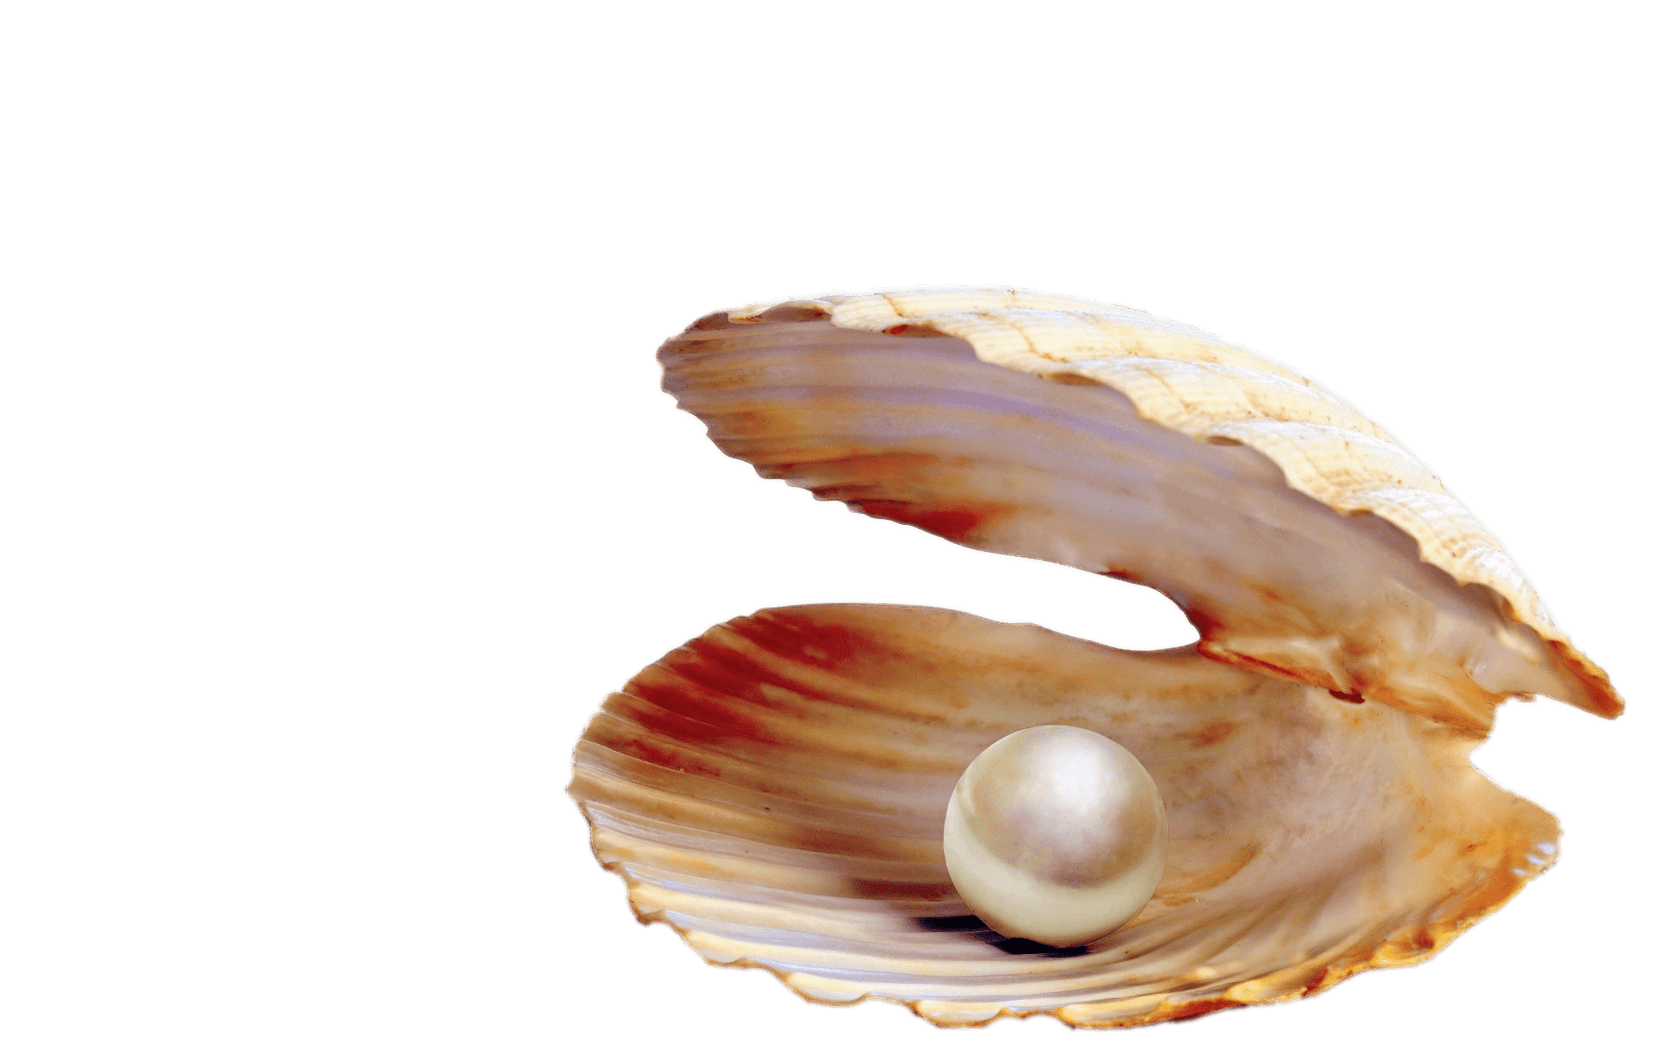 seashell, pearl clipart shell sea pearl for download and use #26421